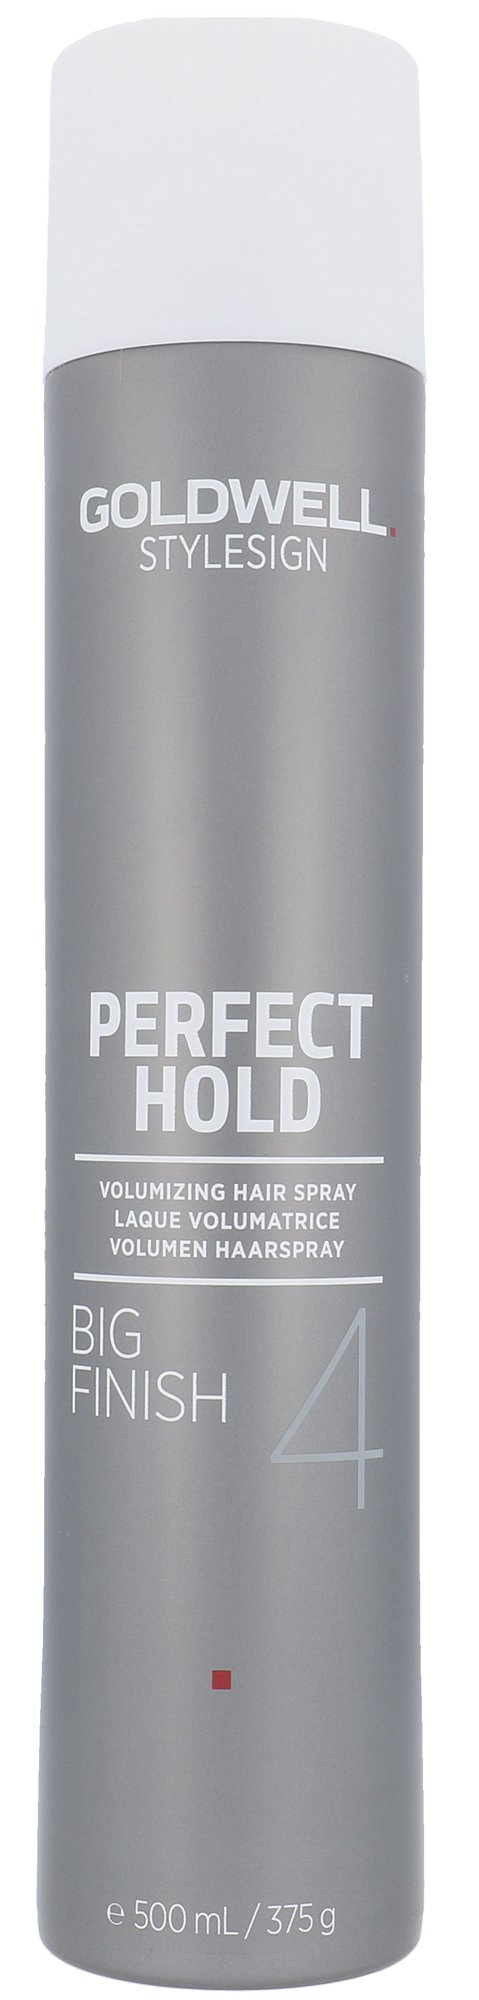 Goldwell Style Sign Perfect Hold Big Finish Cosmetic 500ml